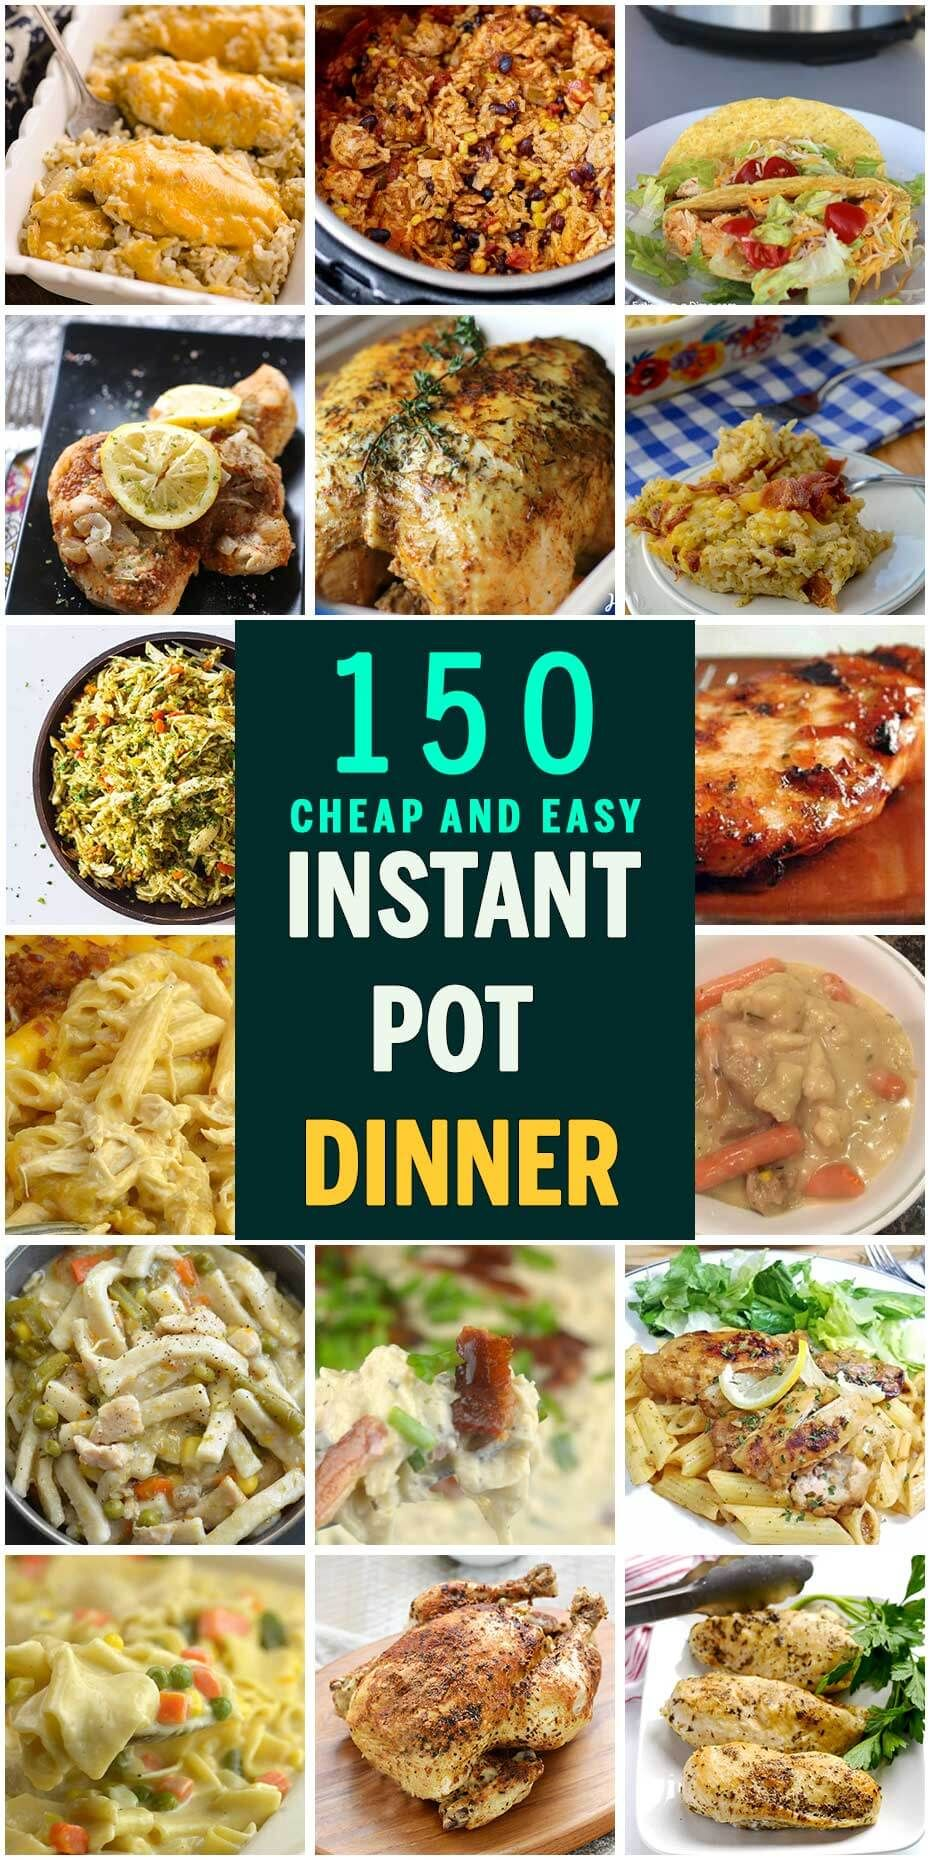 150 Cheap and Easy Instant Pot Dinner Recipes #quickdinnerideas